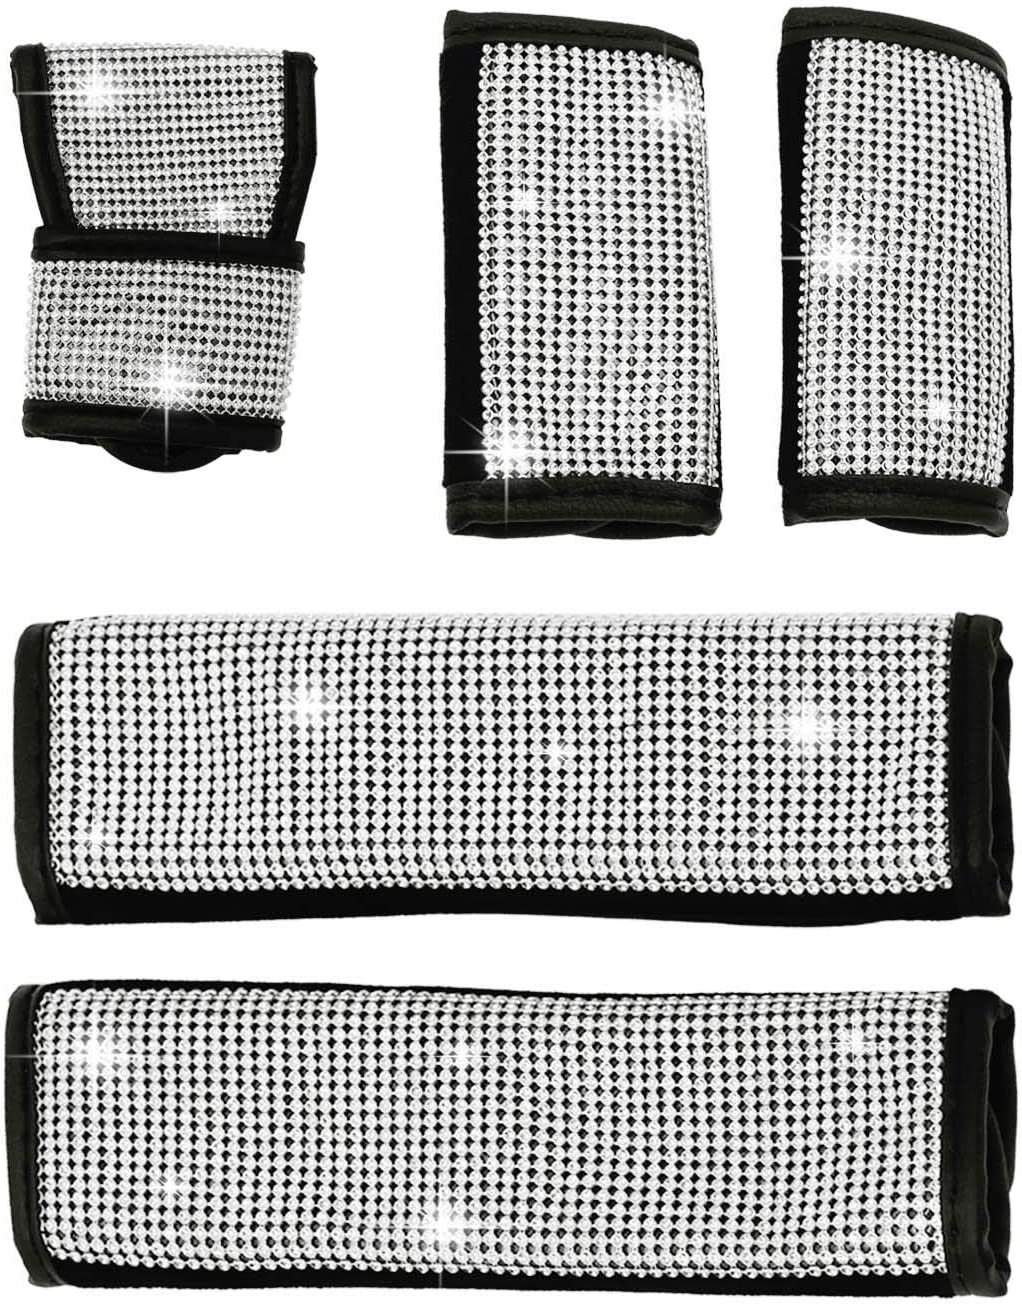 M MOKENEYE Crystal Bling Bling Auto Seat Belt Cover /& Handbrake Cover /& Shift Gear Knob Cover Diamond Auto Interior D/écor Accessories Universal Fit Set of 5